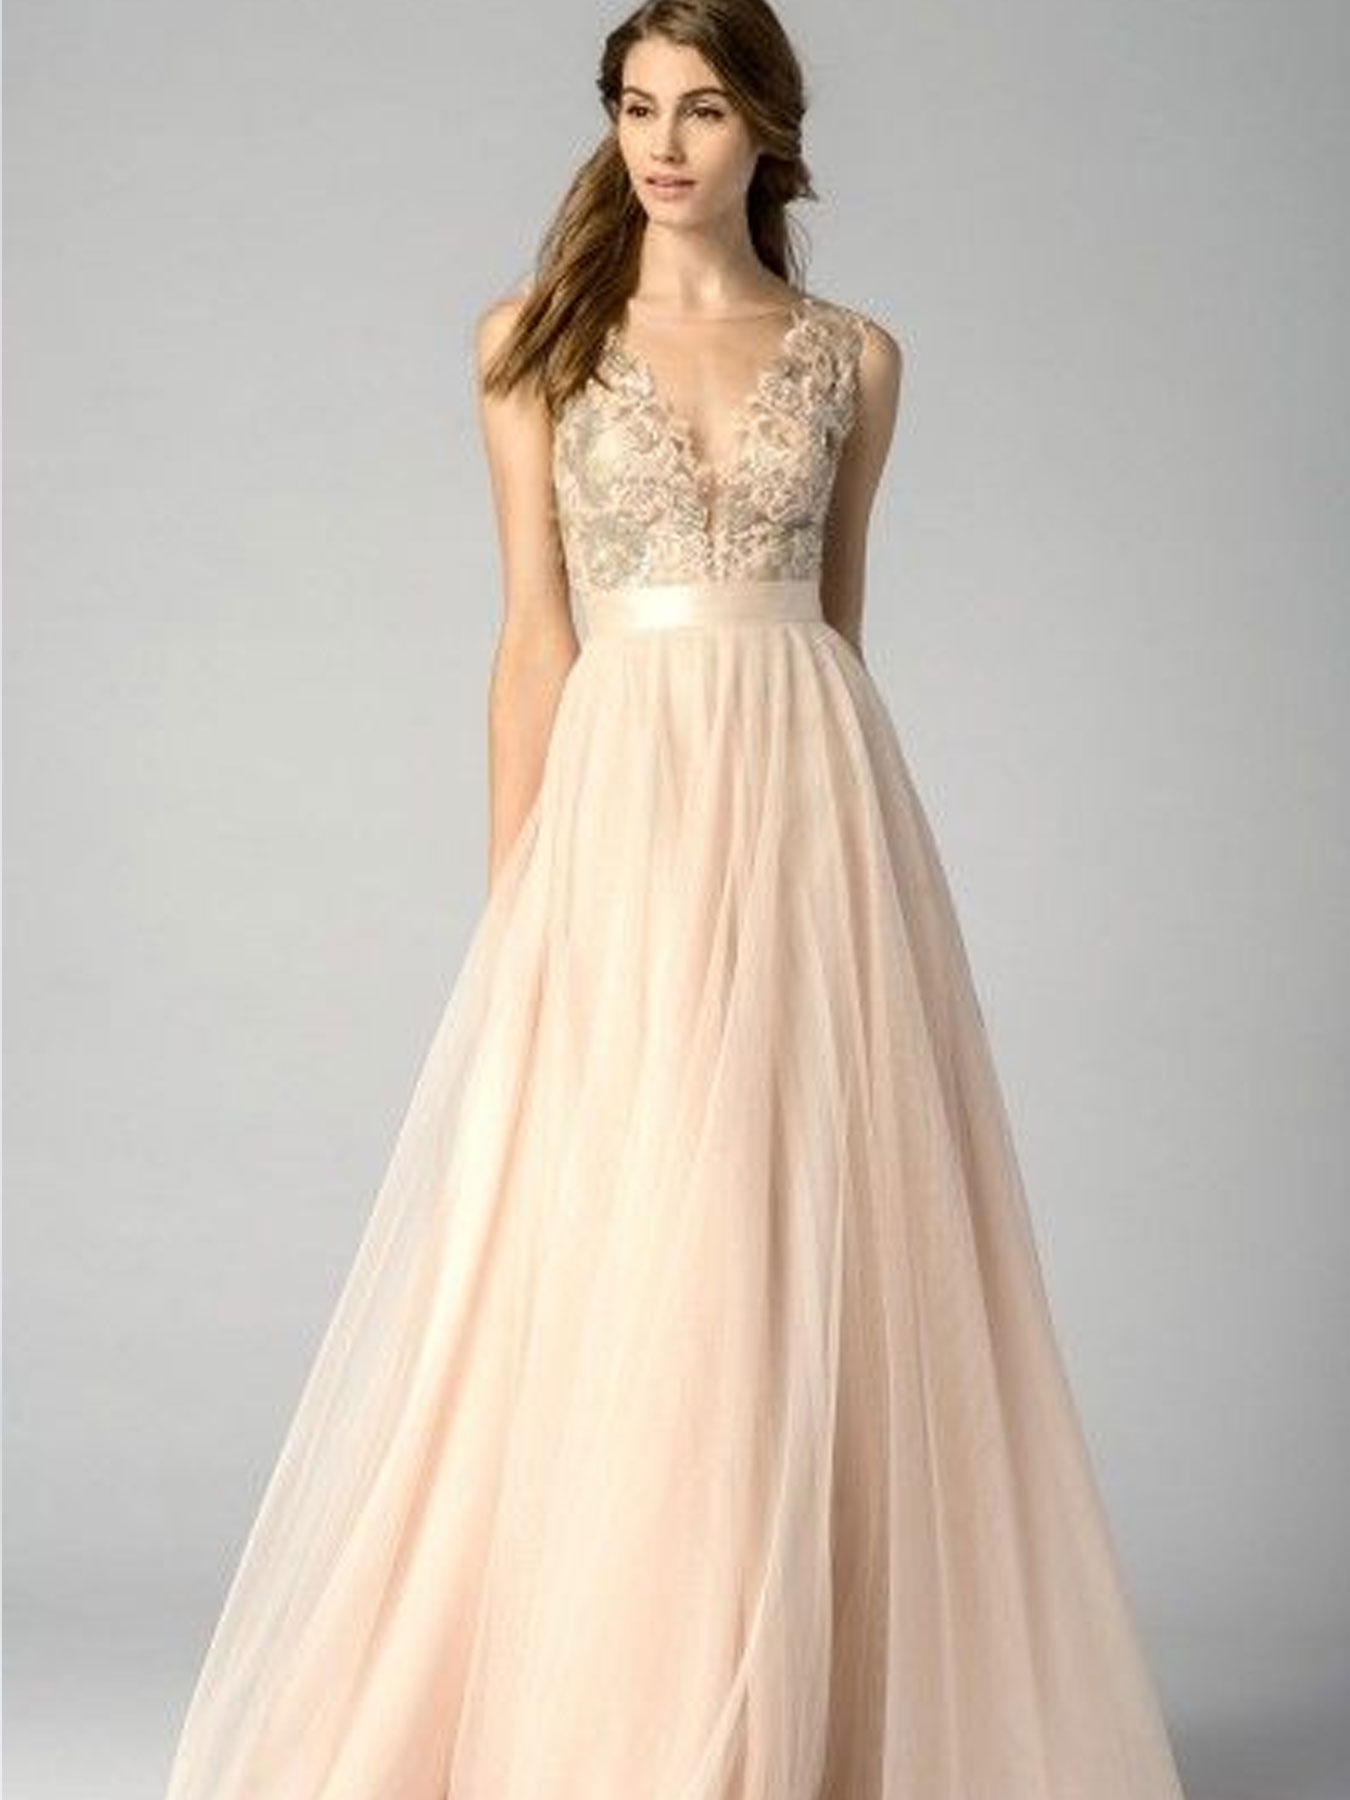 Top 20 bridesmaid bouquet dress color combinations of 2015 blush and lilac bridemaids bouquets buffalo ny lipinoga florist 2 ombrellifo Image collections